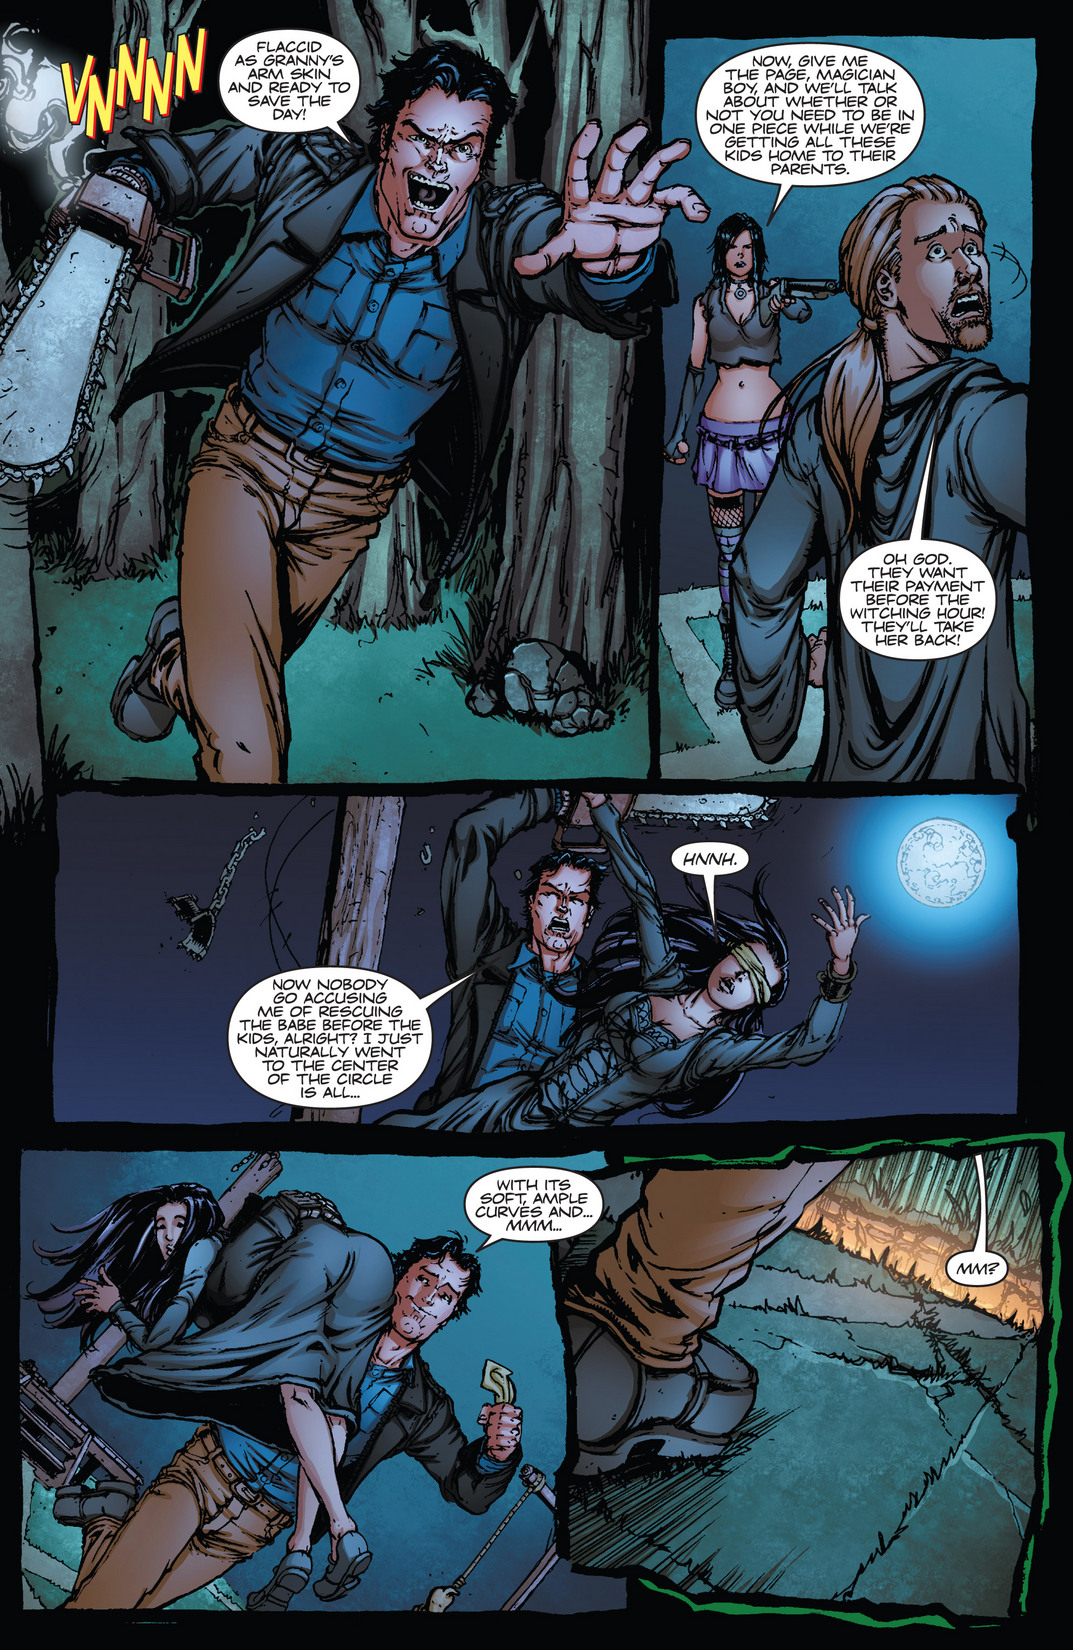 Read online Army of Darkness vs. Hack/Slash comic -  Issue #4 - 16